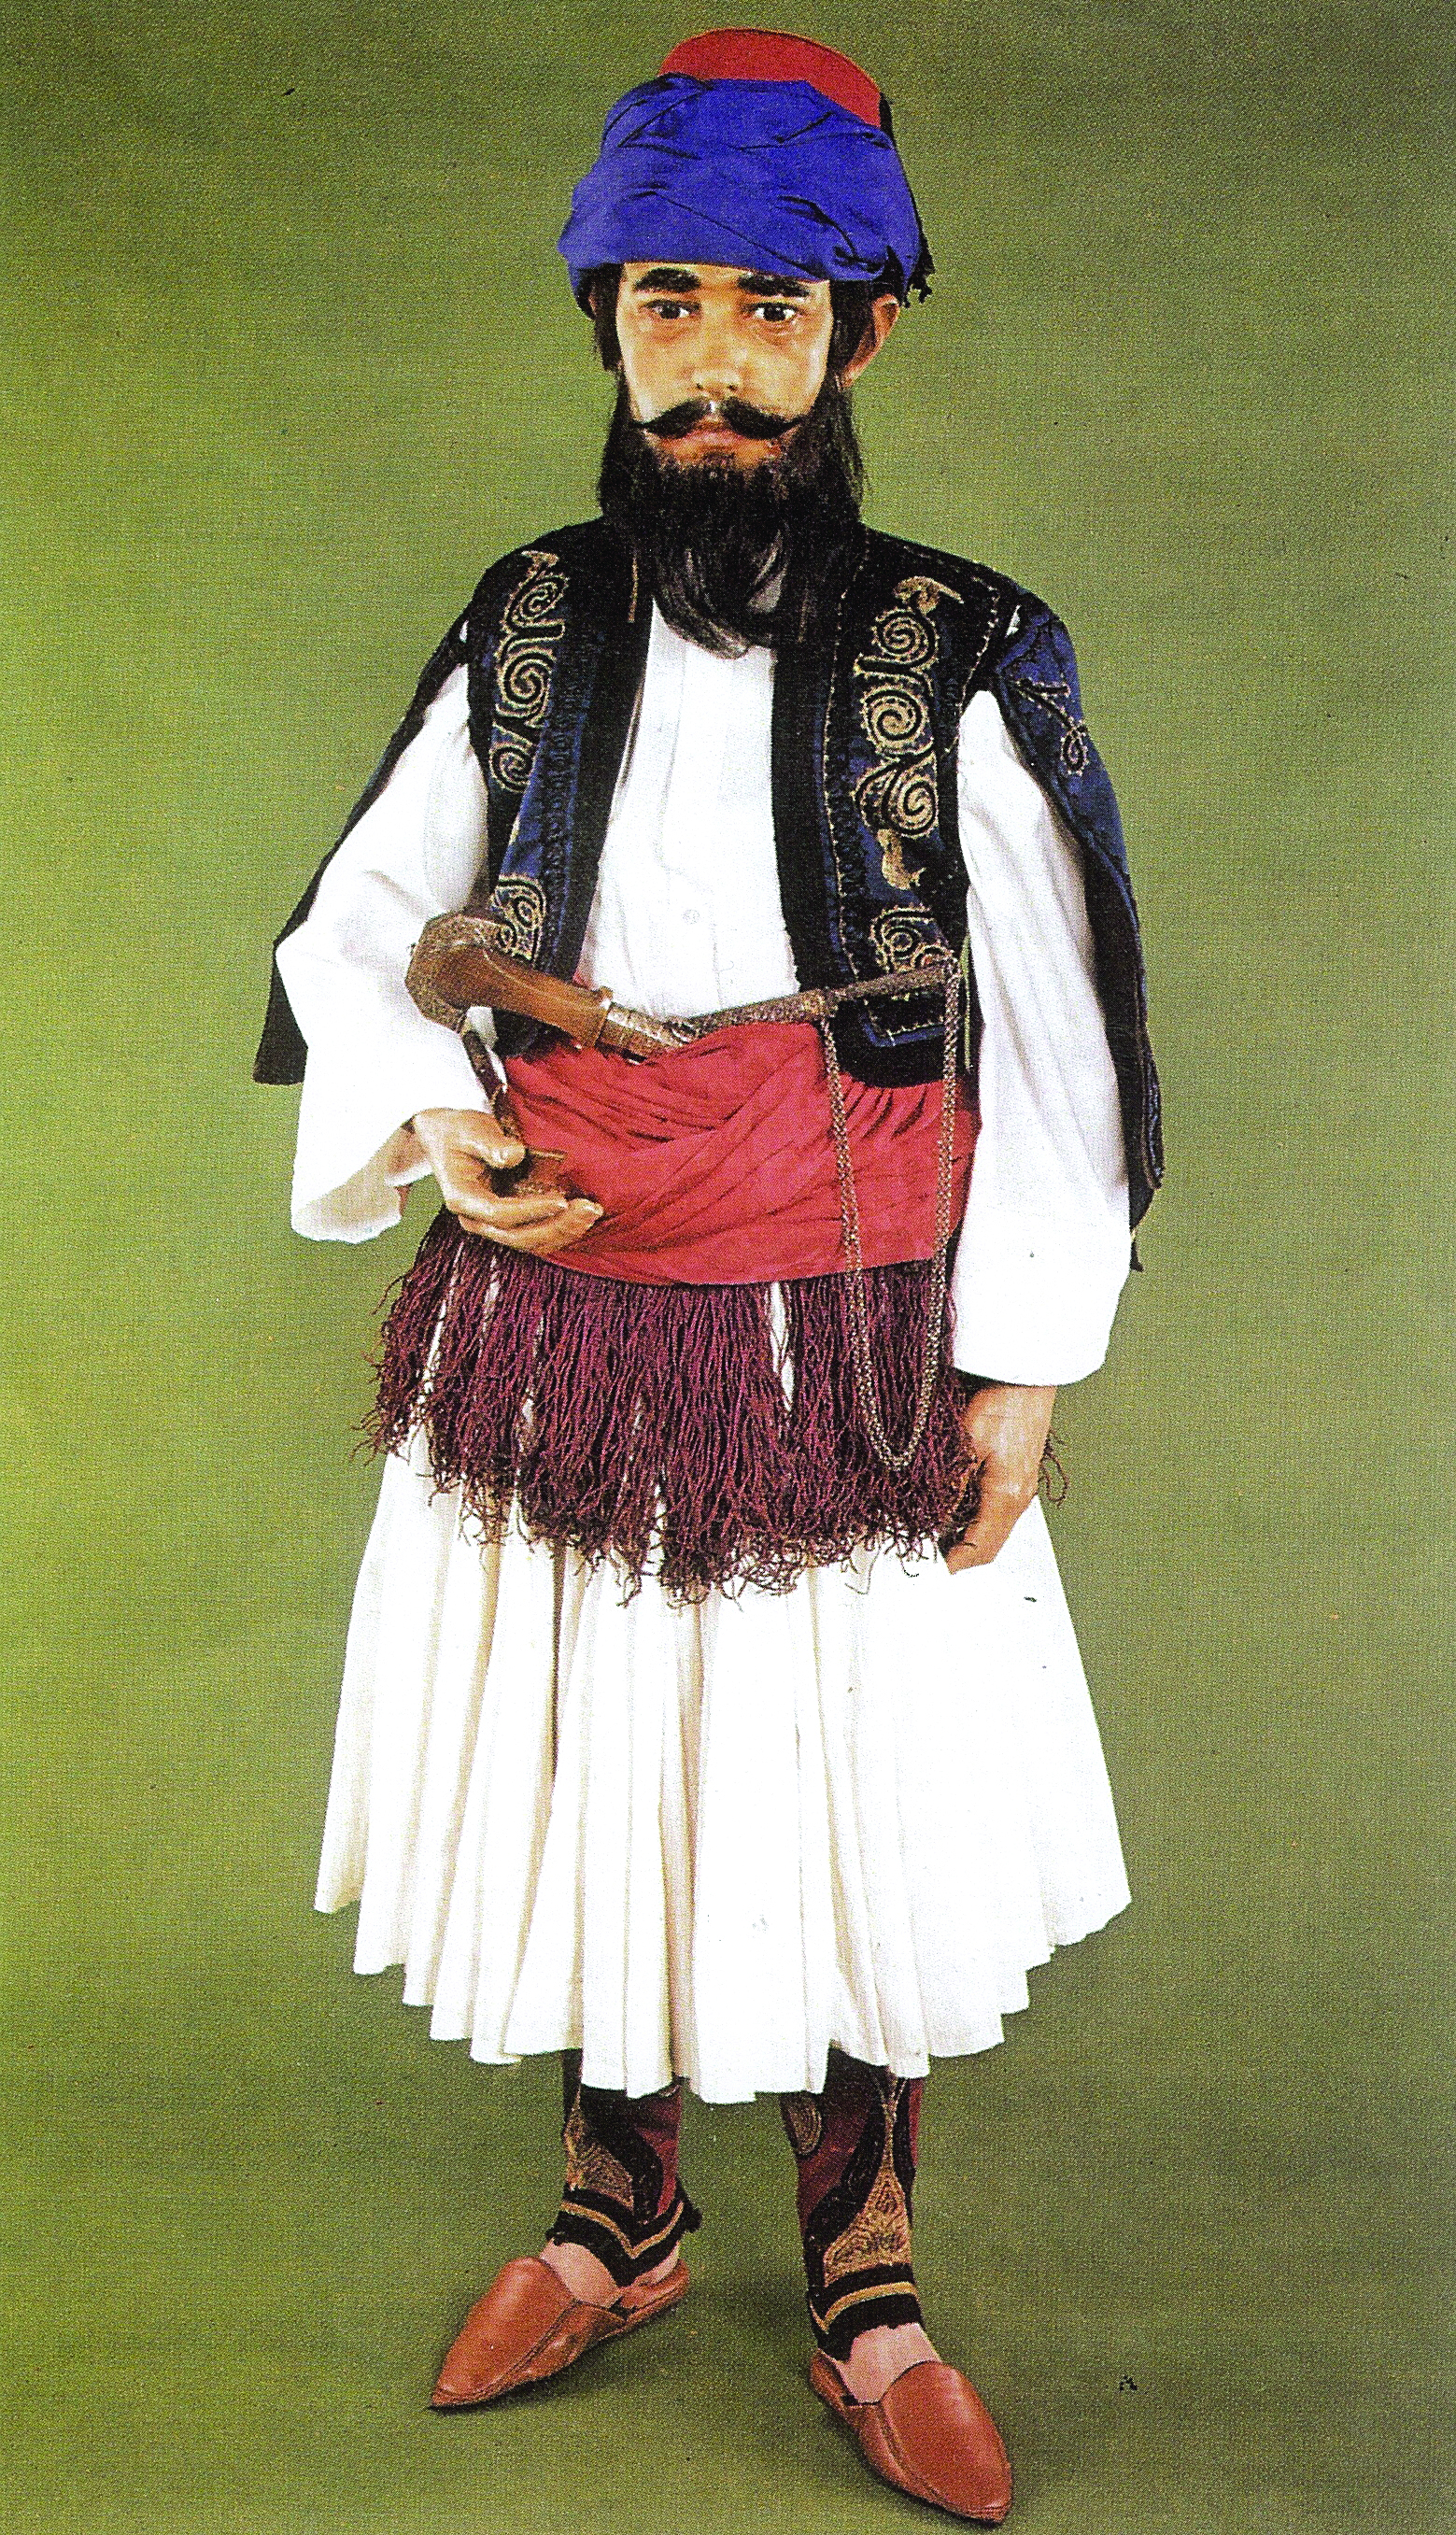 Lord Byron 1788 1824 In Albanian Dress A Sartorial